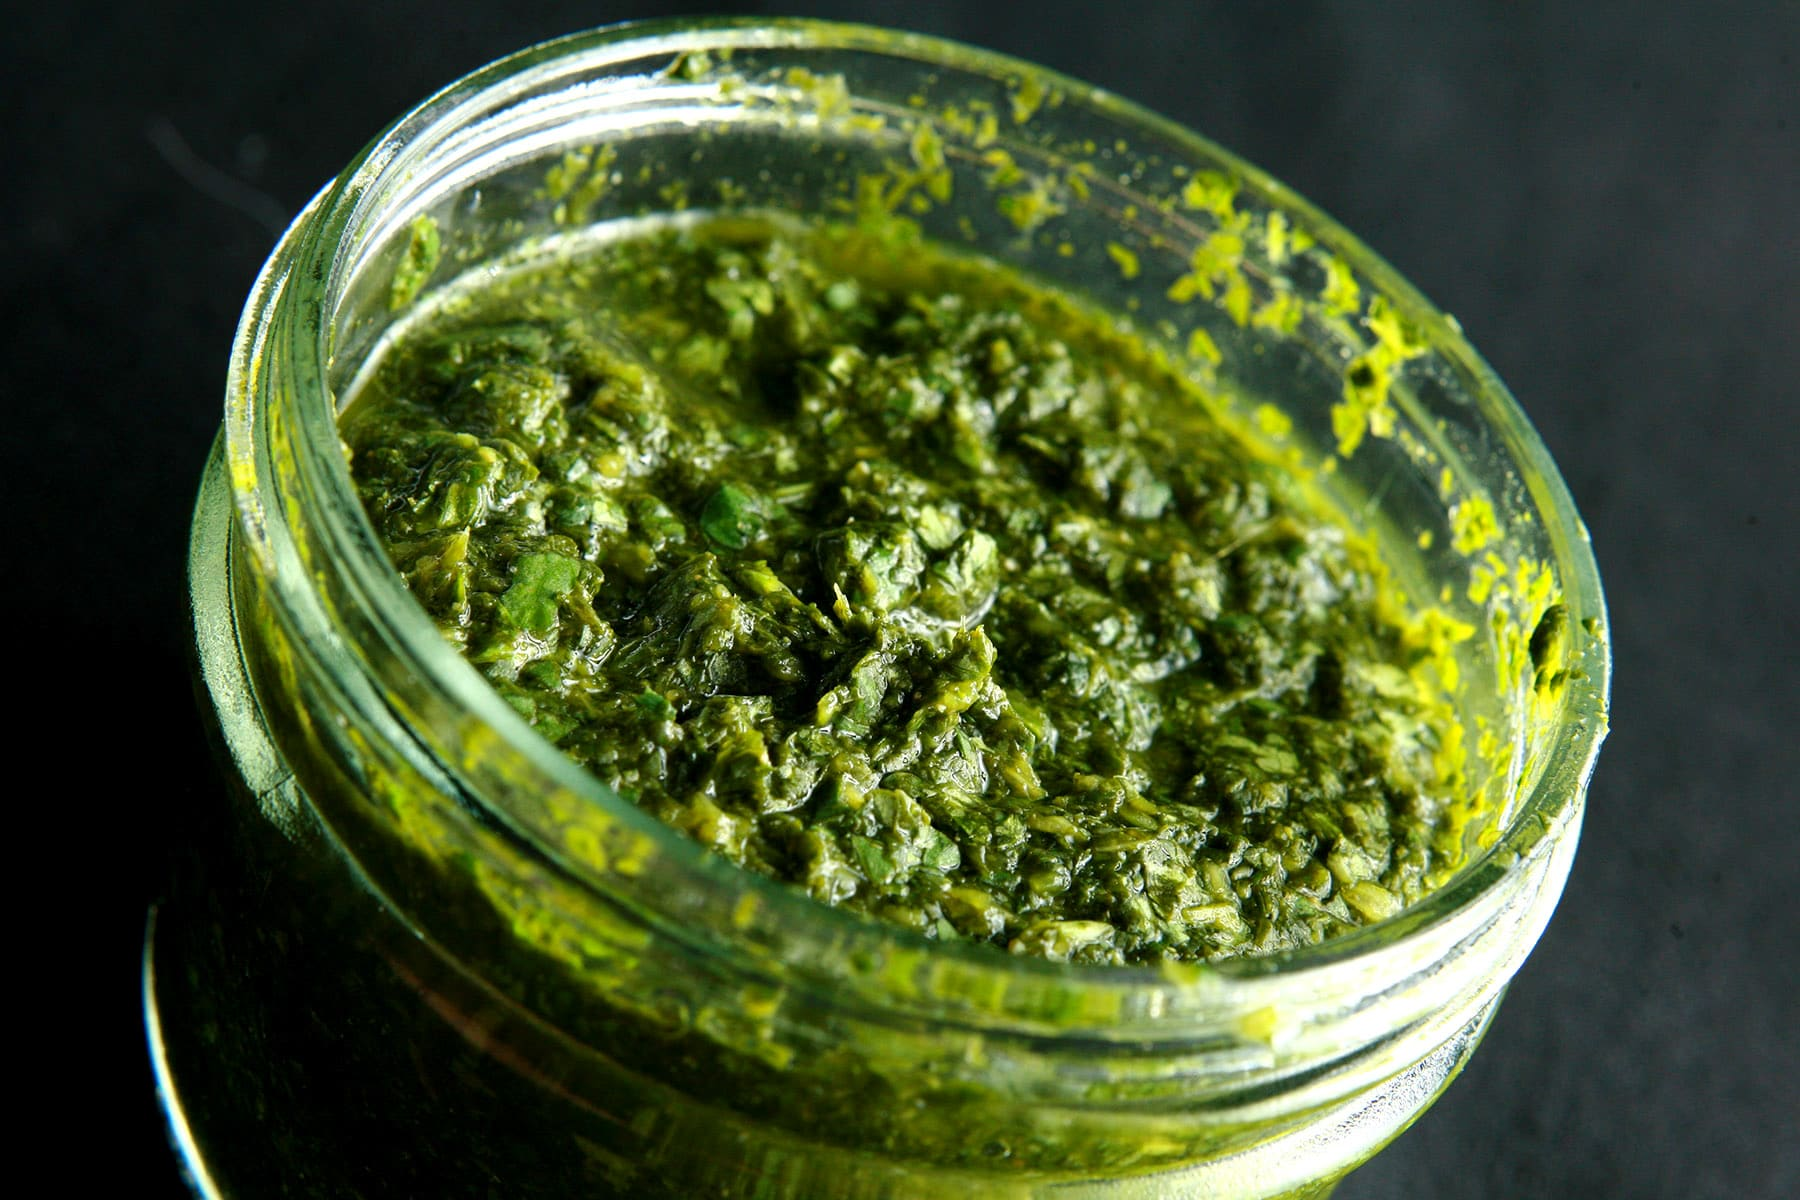 A close up view of a jar of cilantro mint chutney, a deep green dip that looks like pesto.